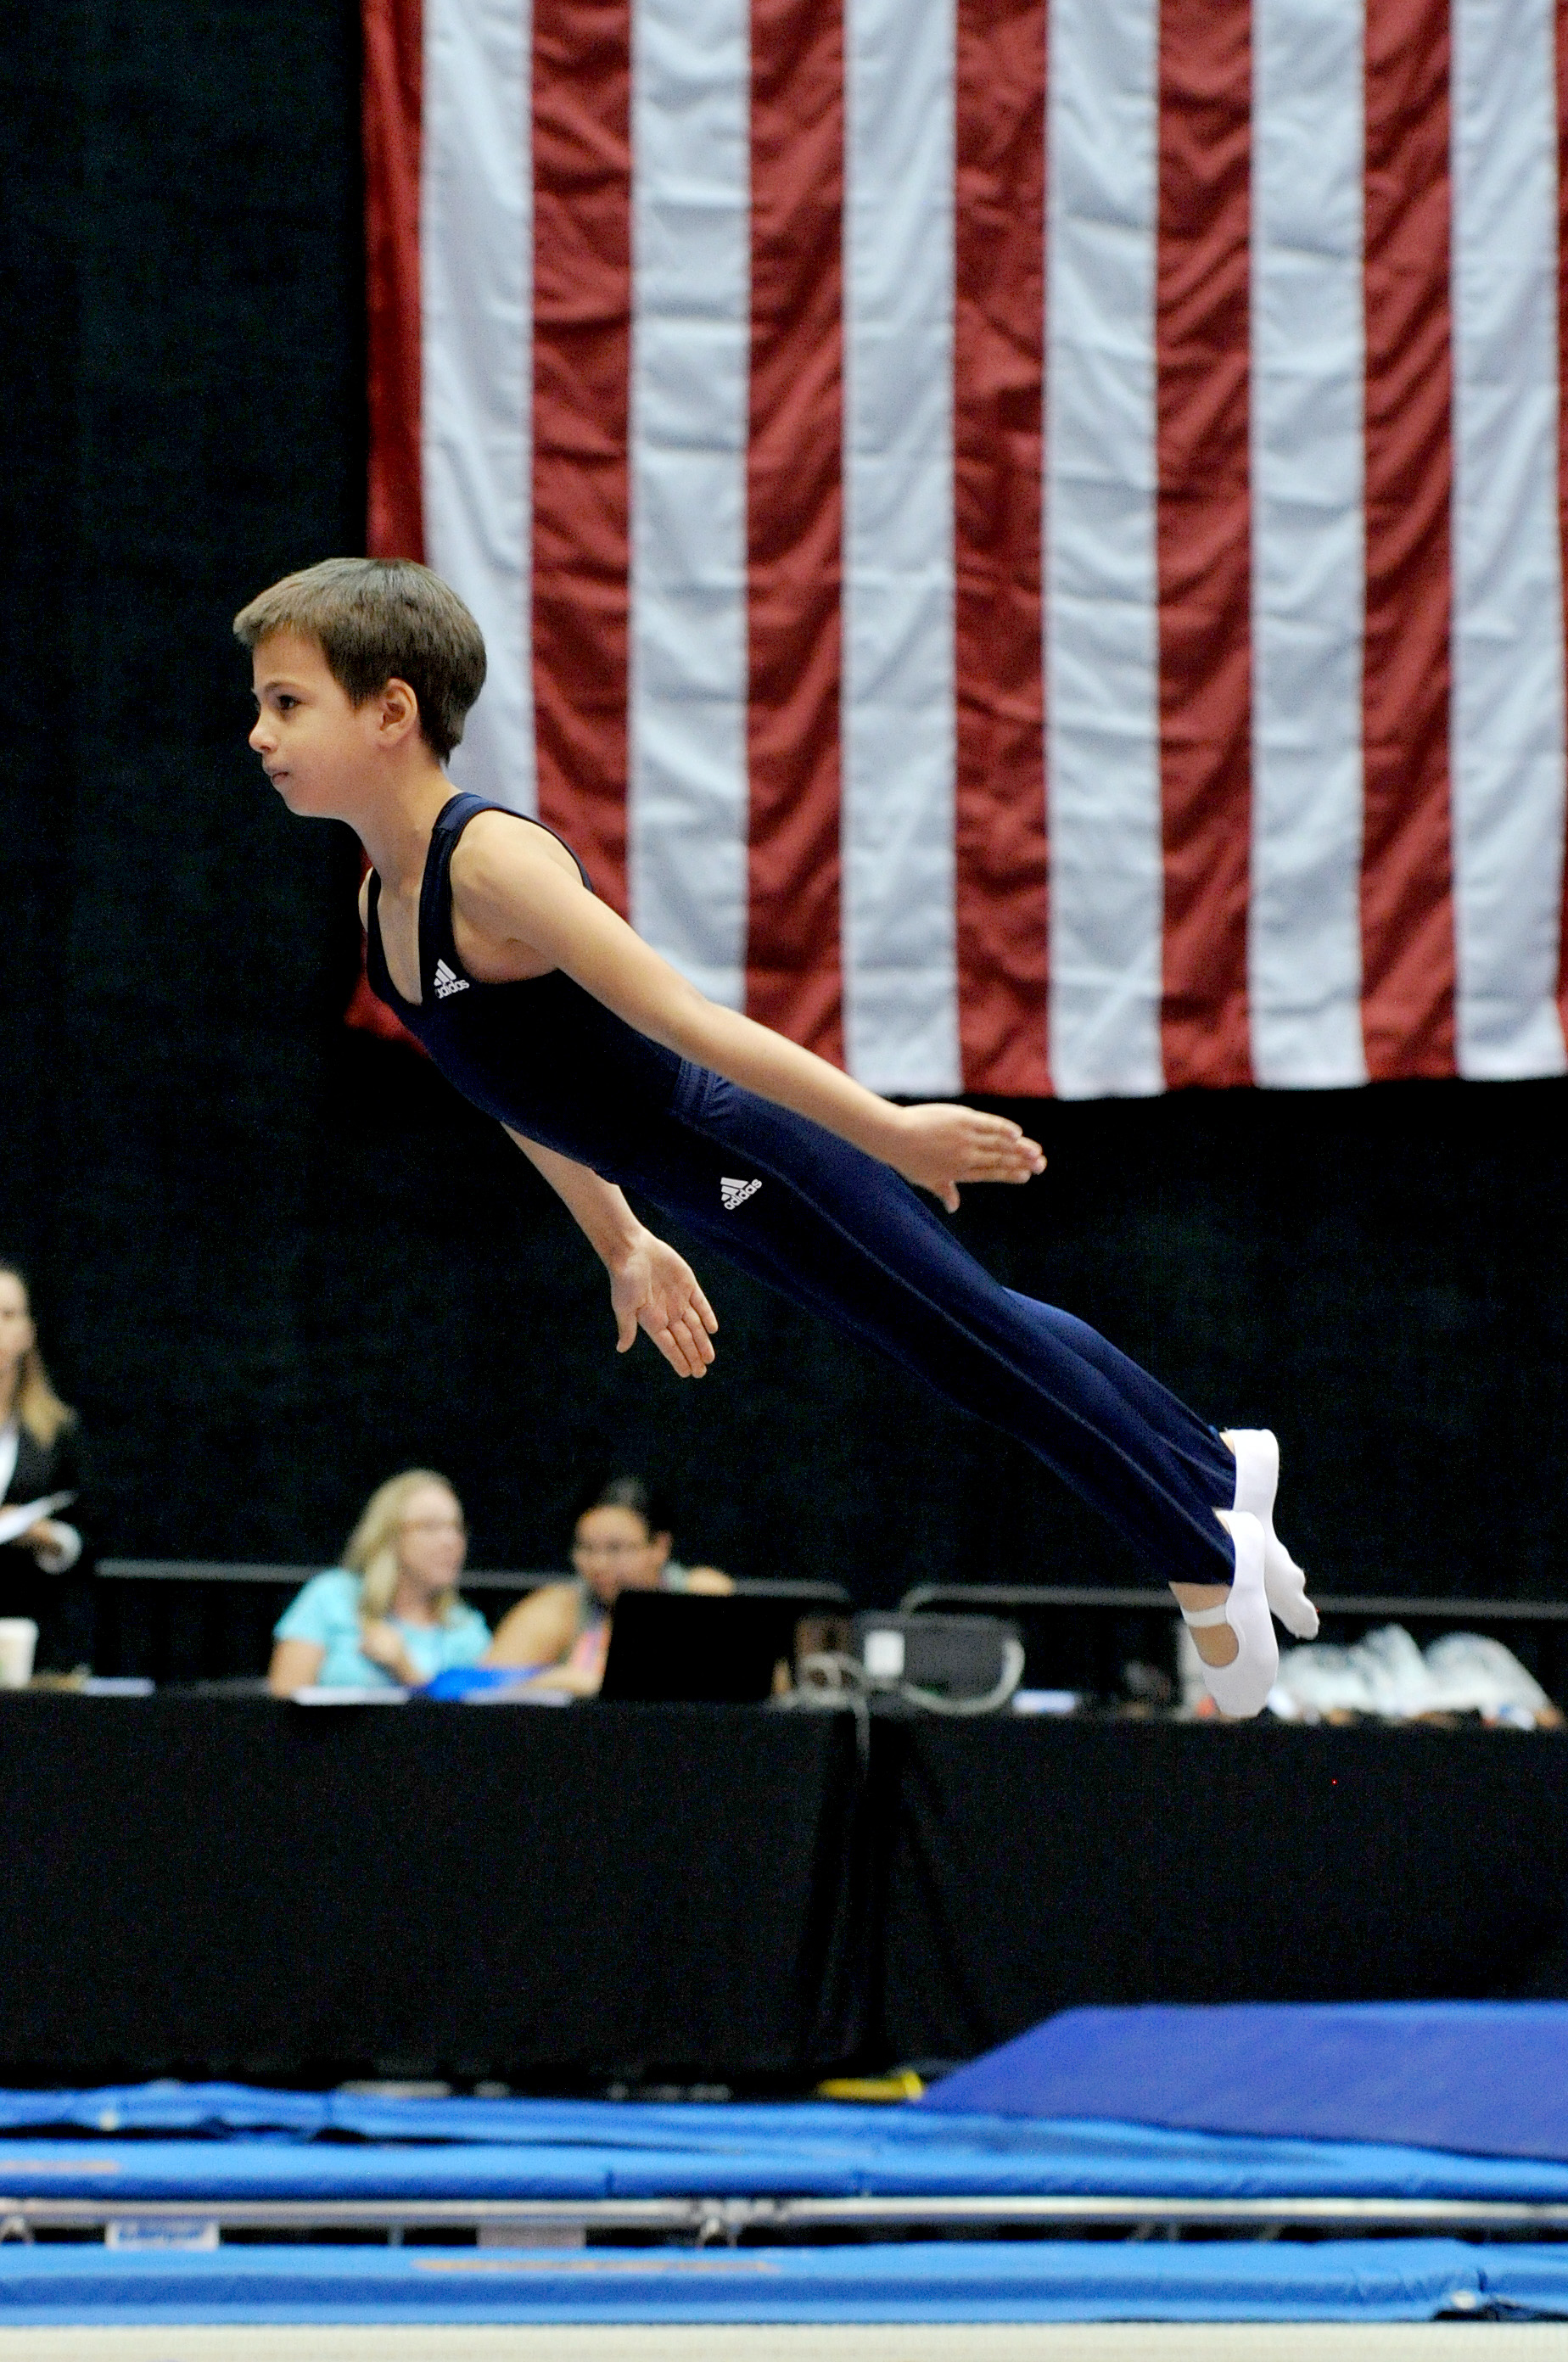 Renna Media | 7 Year Old Gymnast Wins Second Place at The